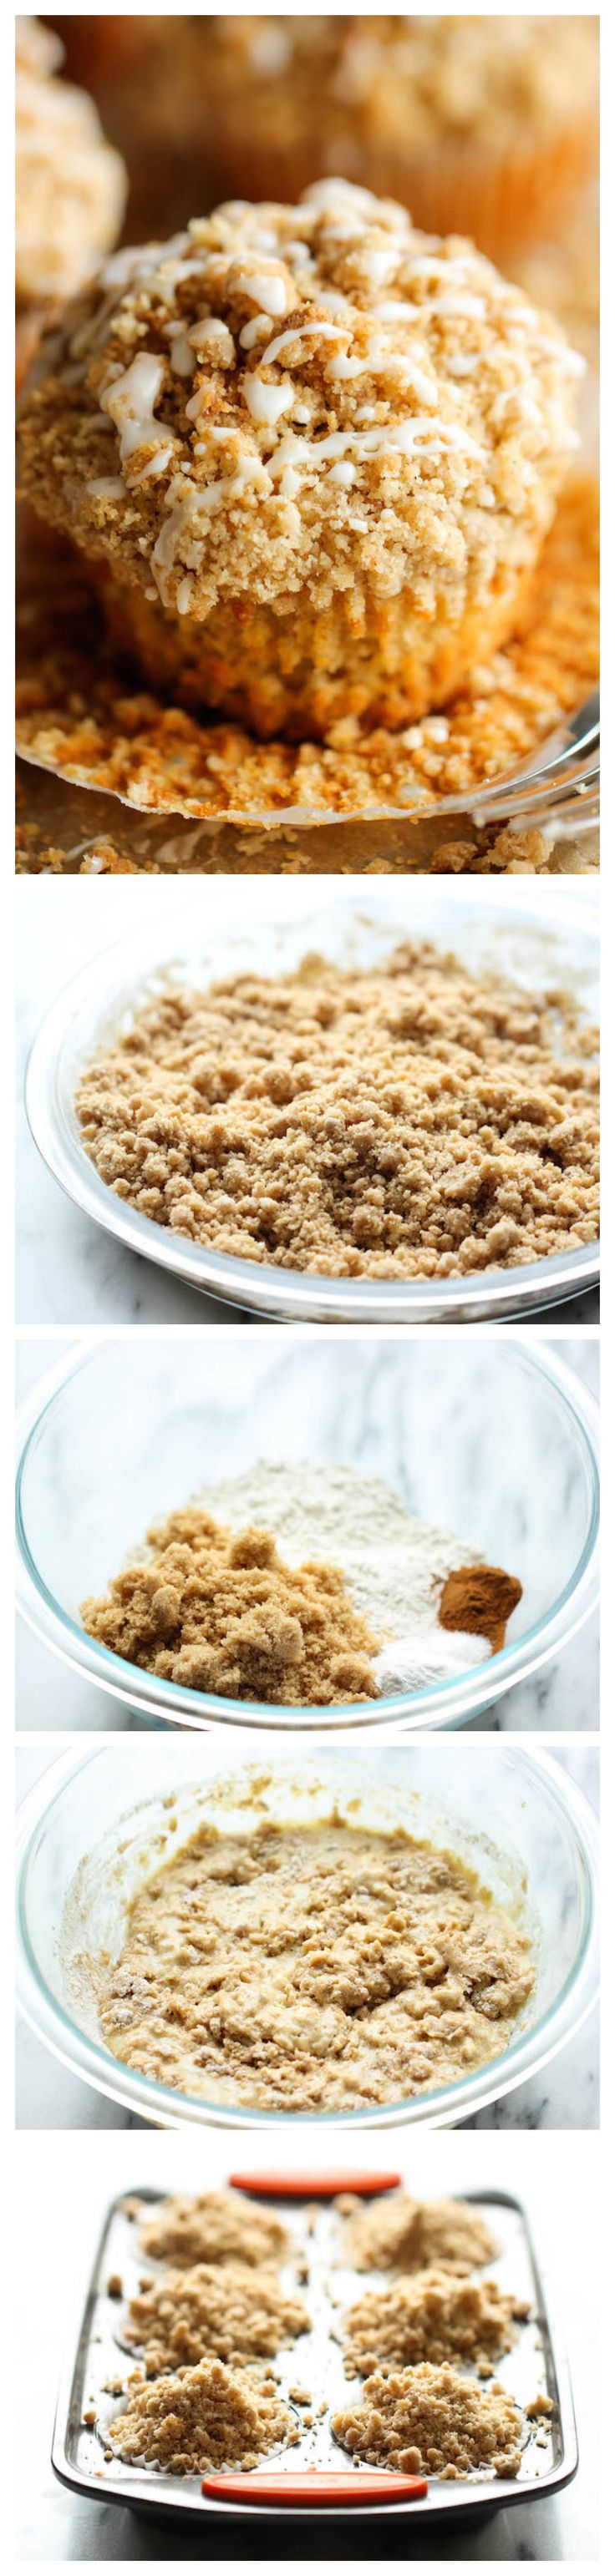 Coffee Cake Muffins - The classic coffee cake is transformed into a convenient muffin, loaded with a mile-high crumb topping!